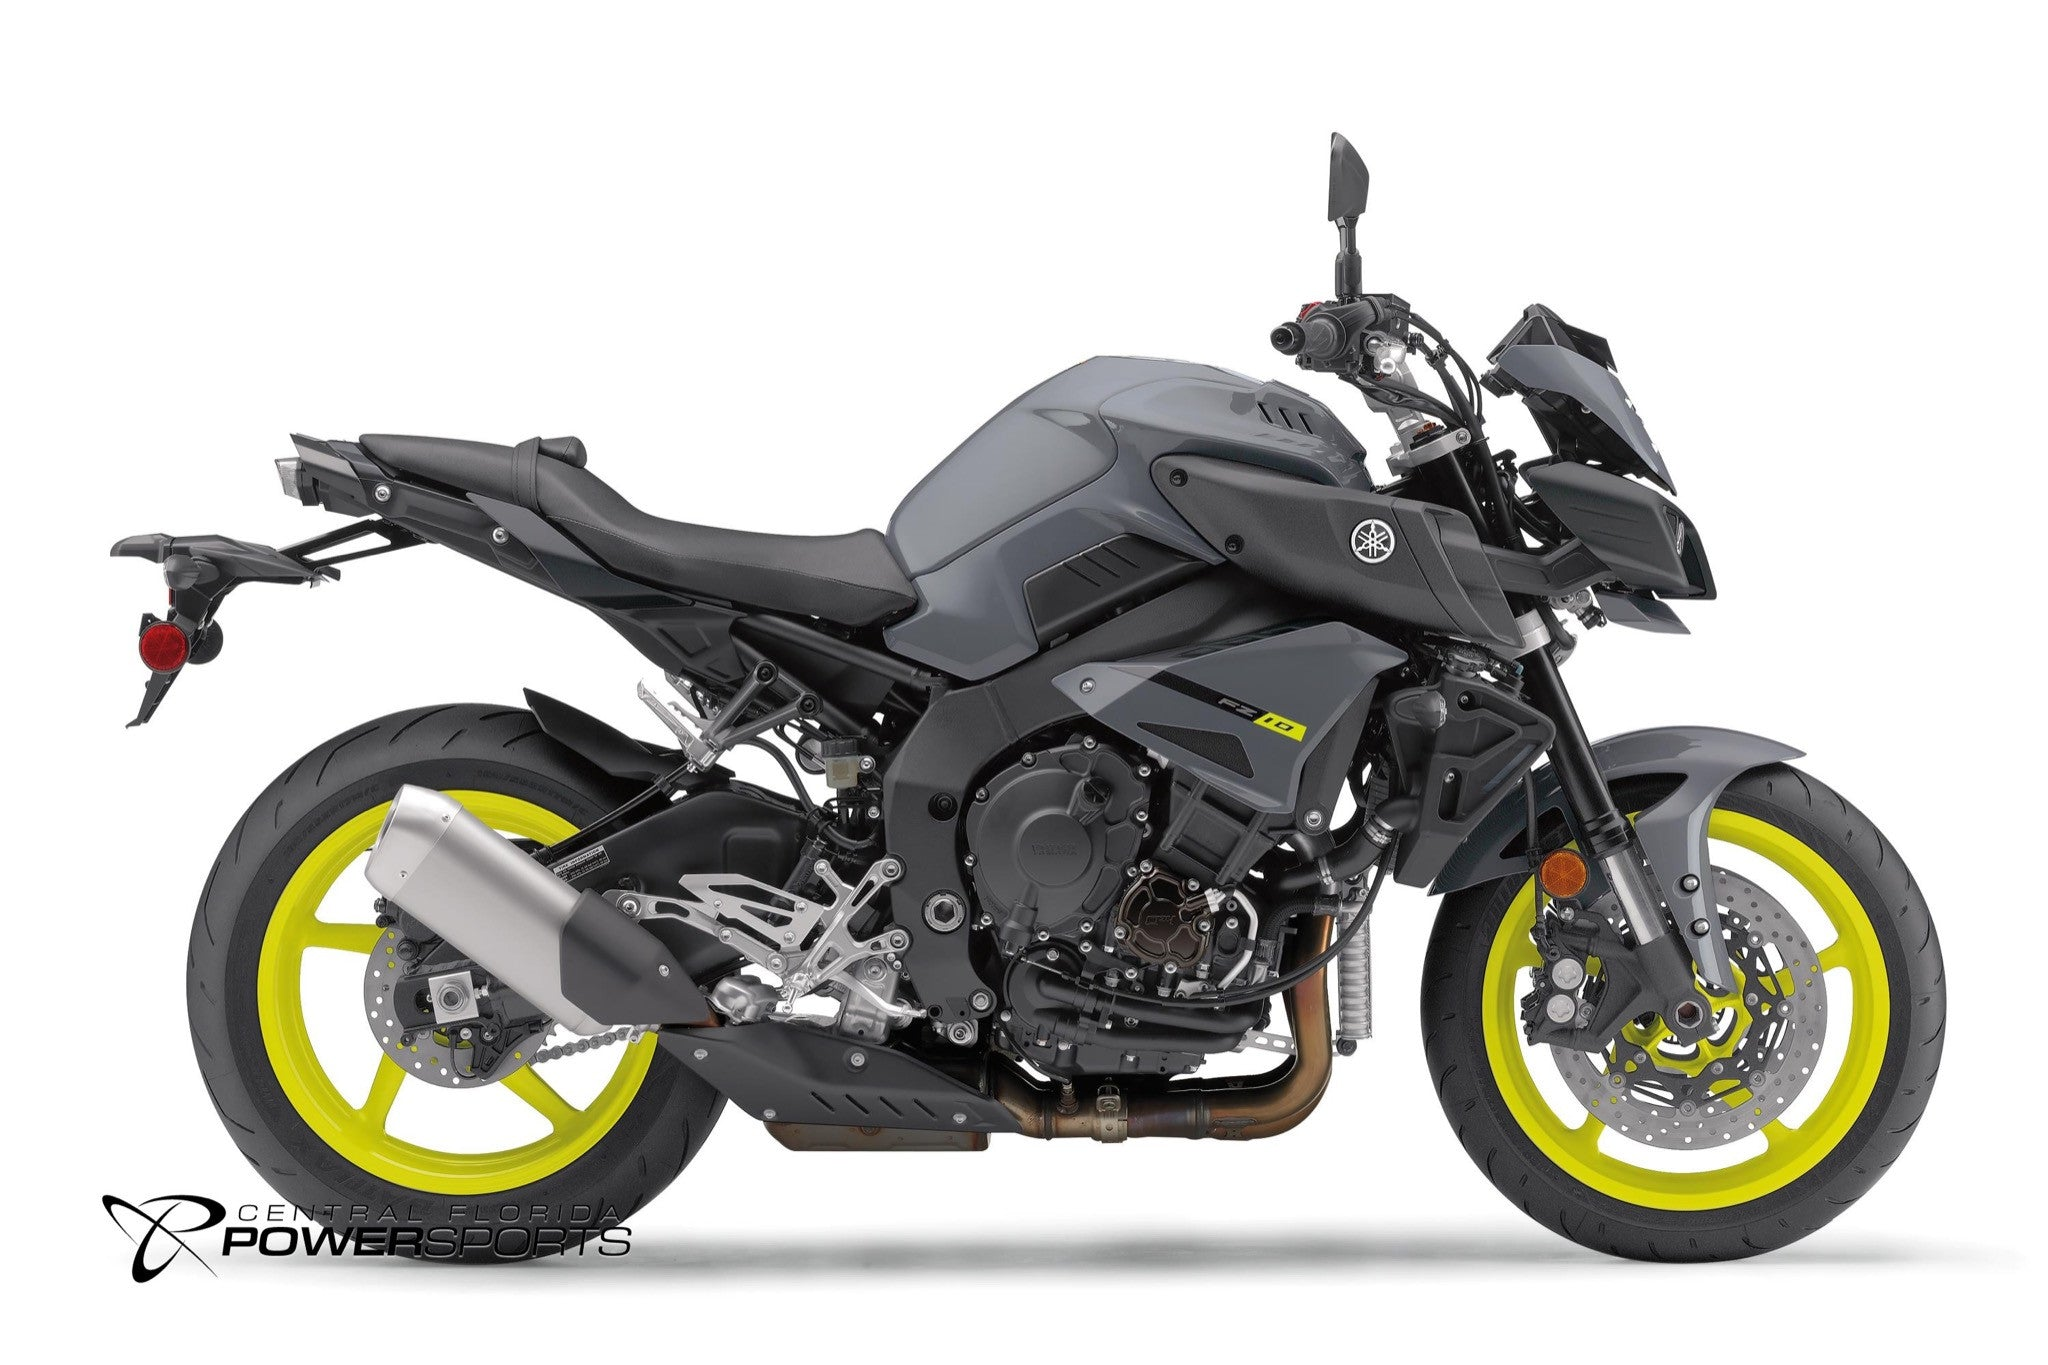 2017 yamaha fz 10 bike for sale lowest prices around for Yamaha bike dealer locator